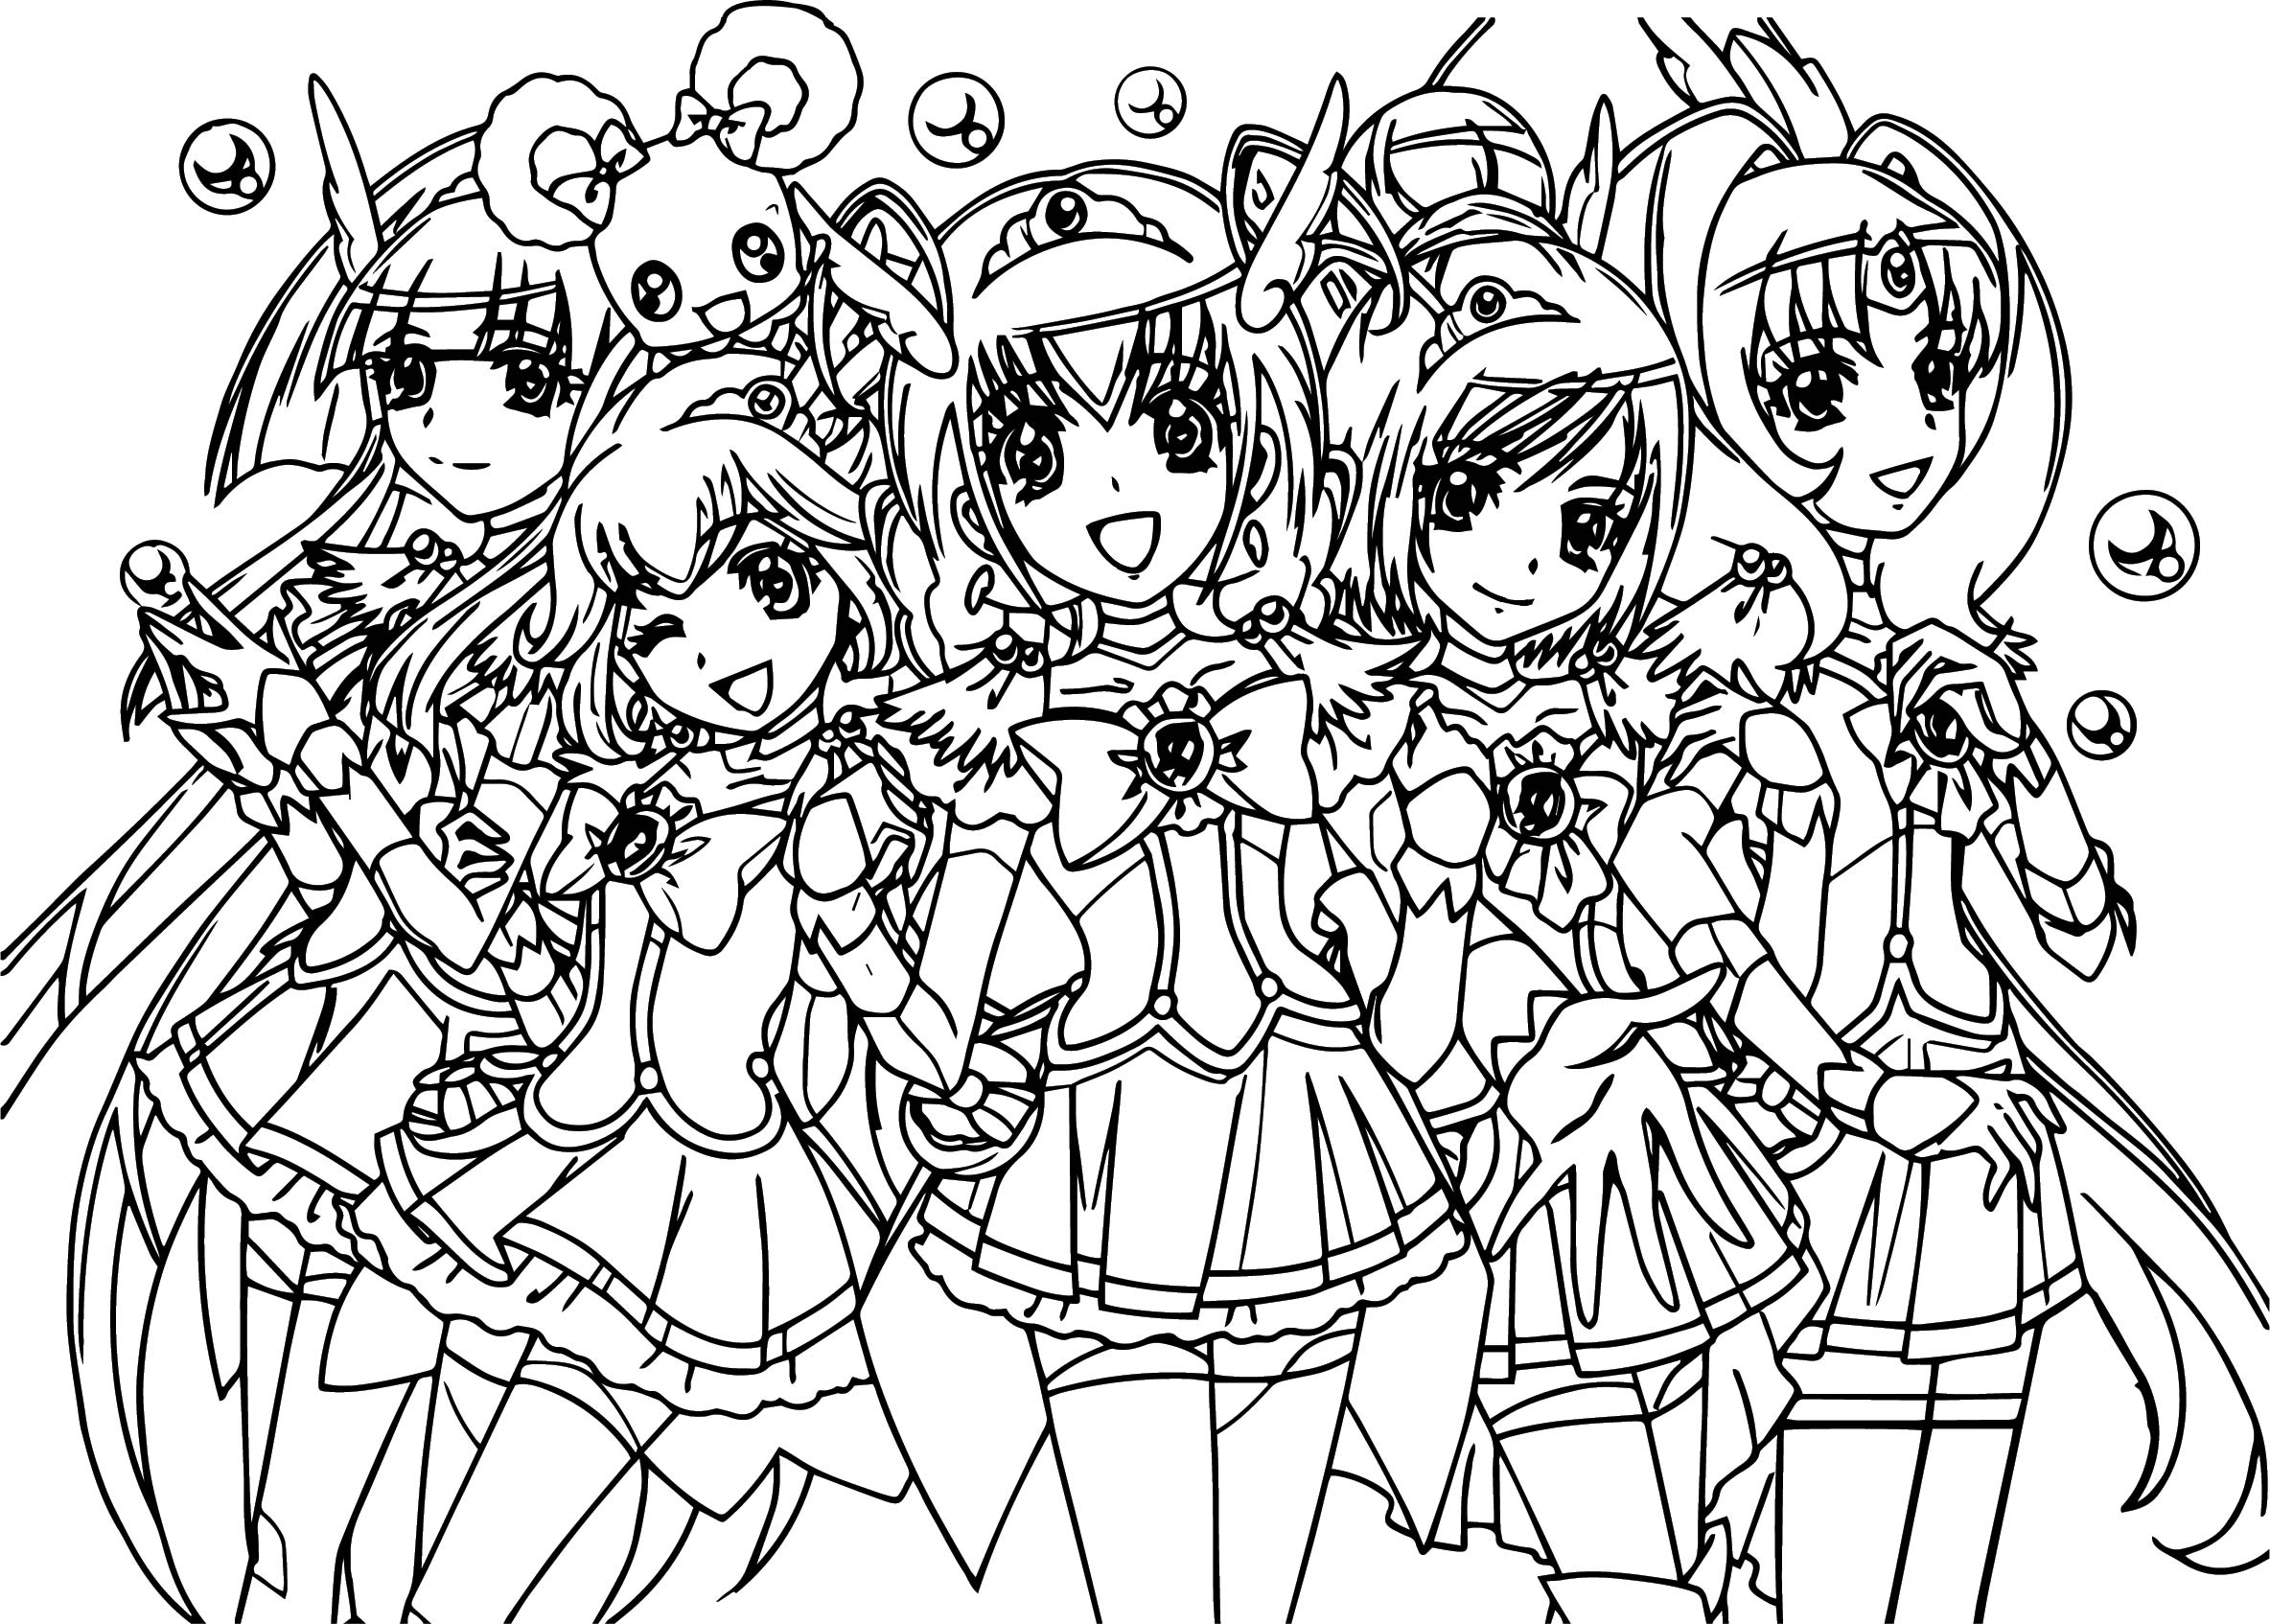 smile precure glitter force team coloring page wecoloringpage